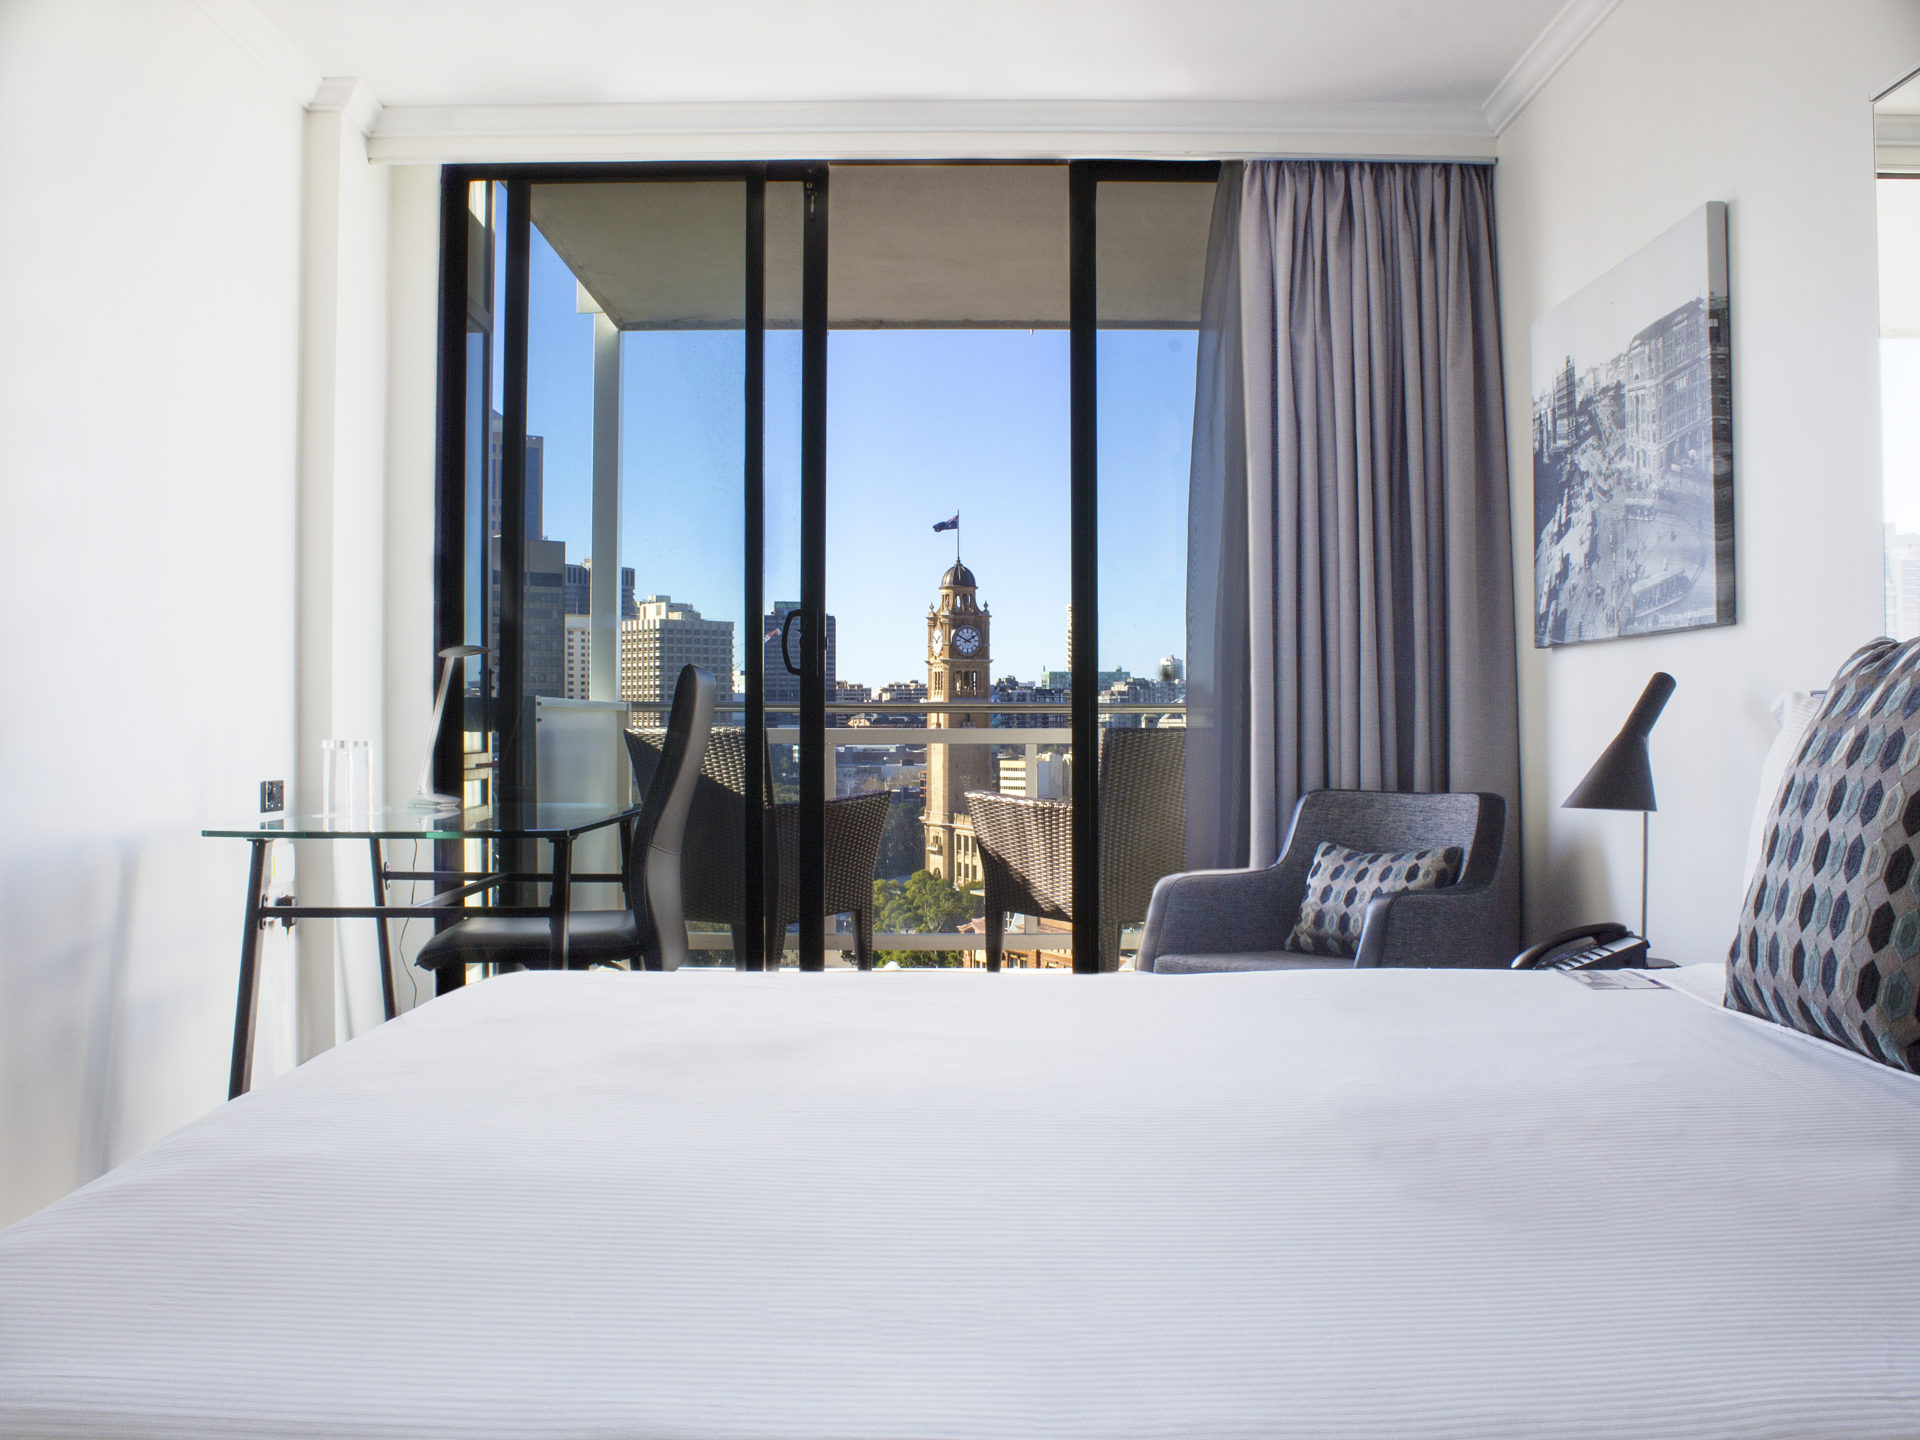 Mercure Sydney Hotel Accommodation Room with View of Sydney and Central Station